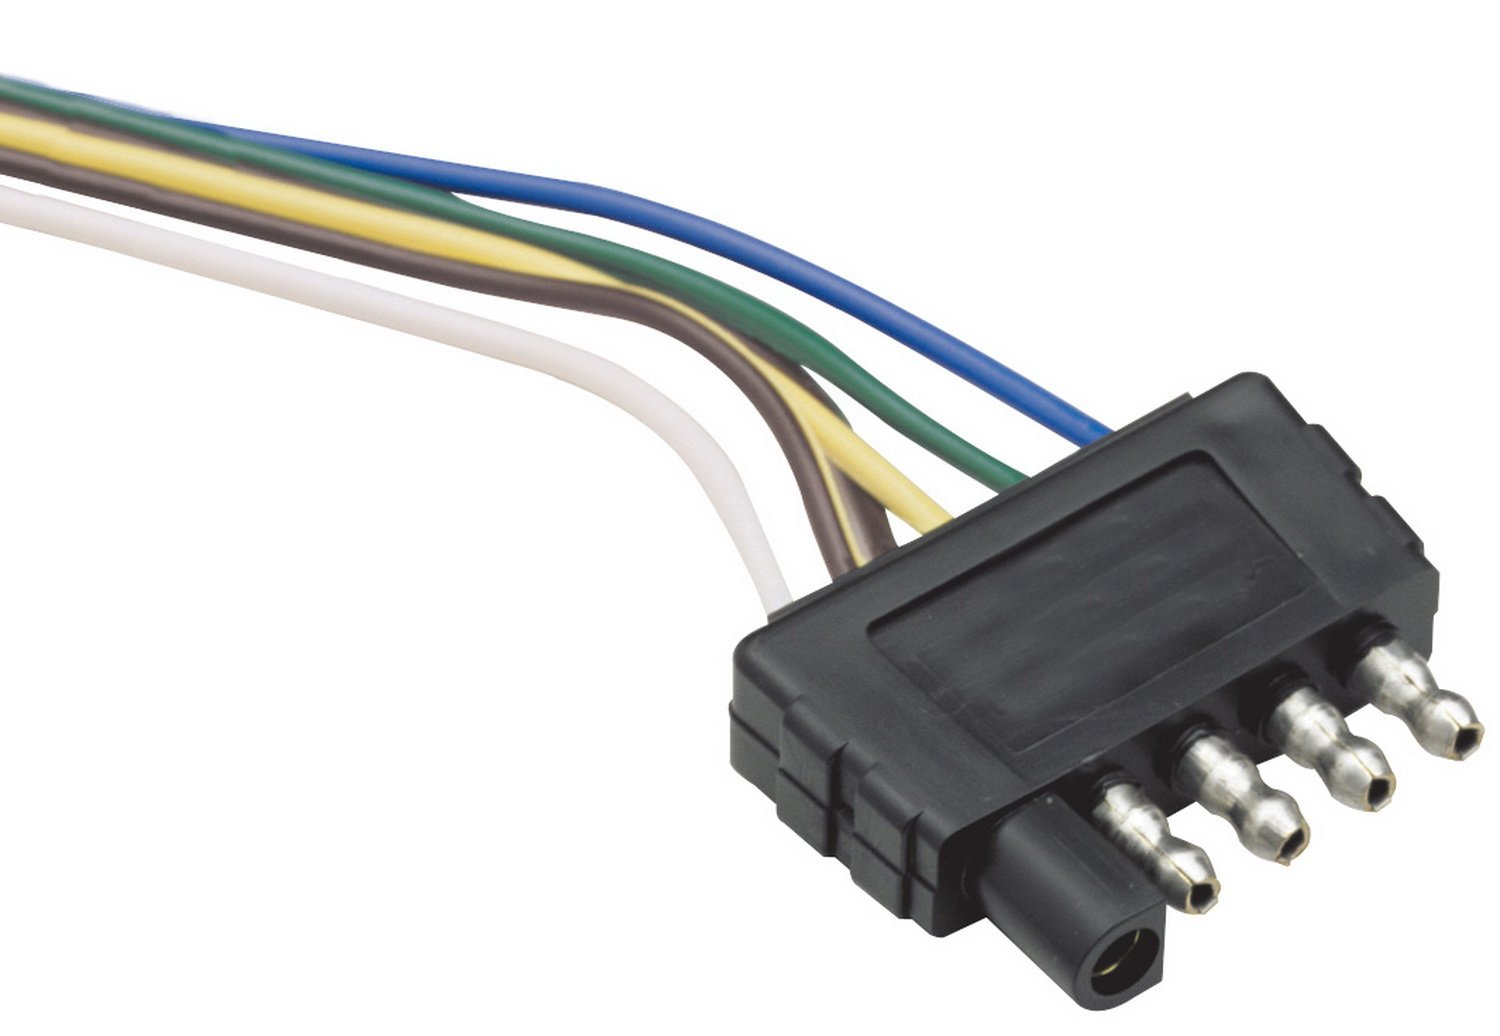 61U8 cIQMQL._SL1500_ amazon com reese towpower 85214 5 way flat connector automotive 5 way flat trailer plug wiring diagram at soozxer.org